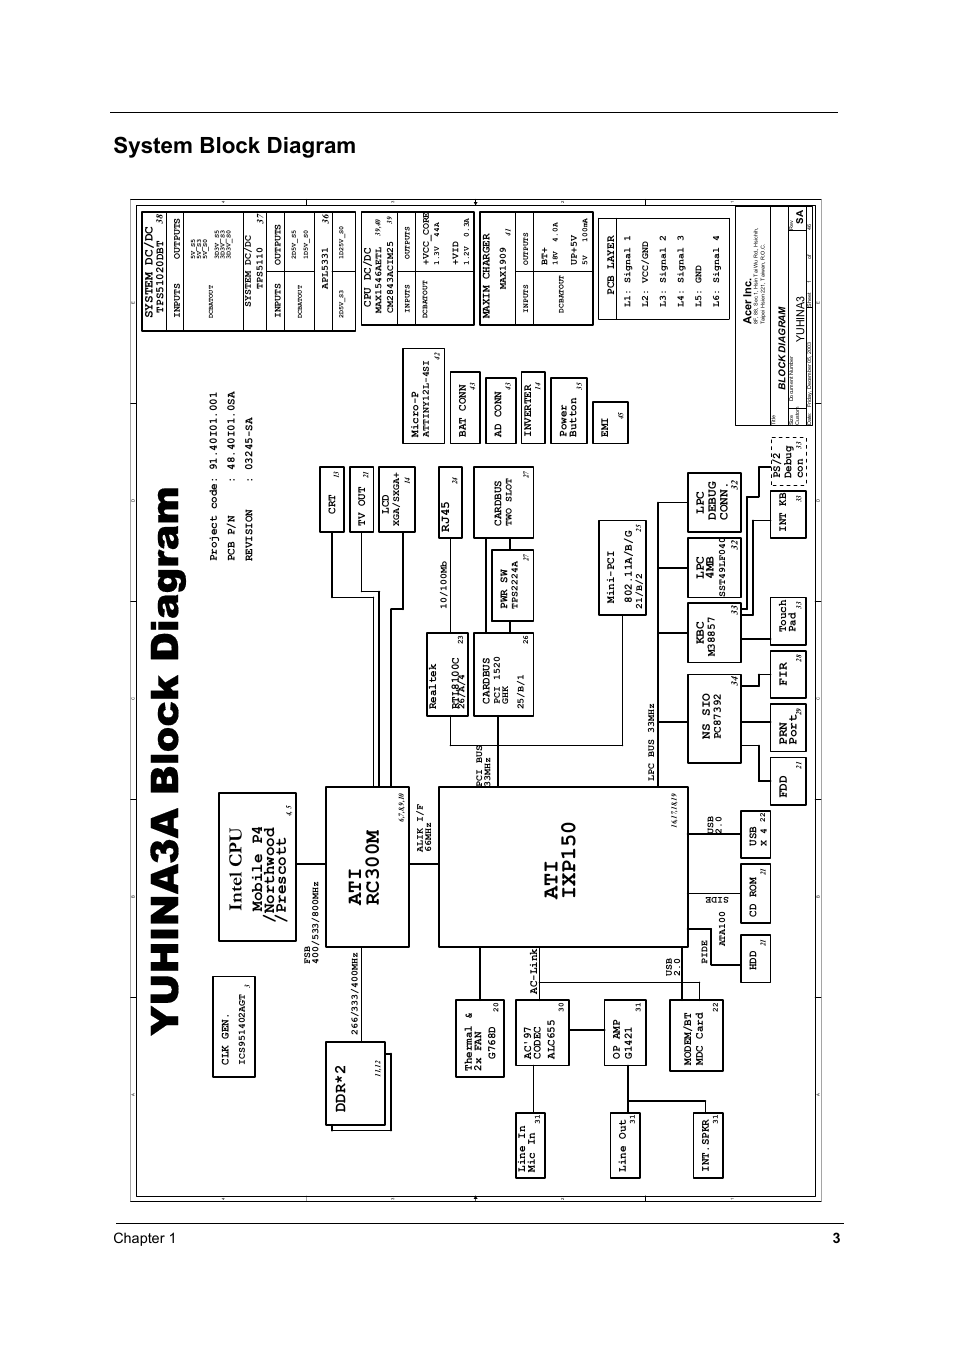 hight resolution of system block diagram yuhina3a block diagram ati ixp150 acer 2600 user manual page 8 126